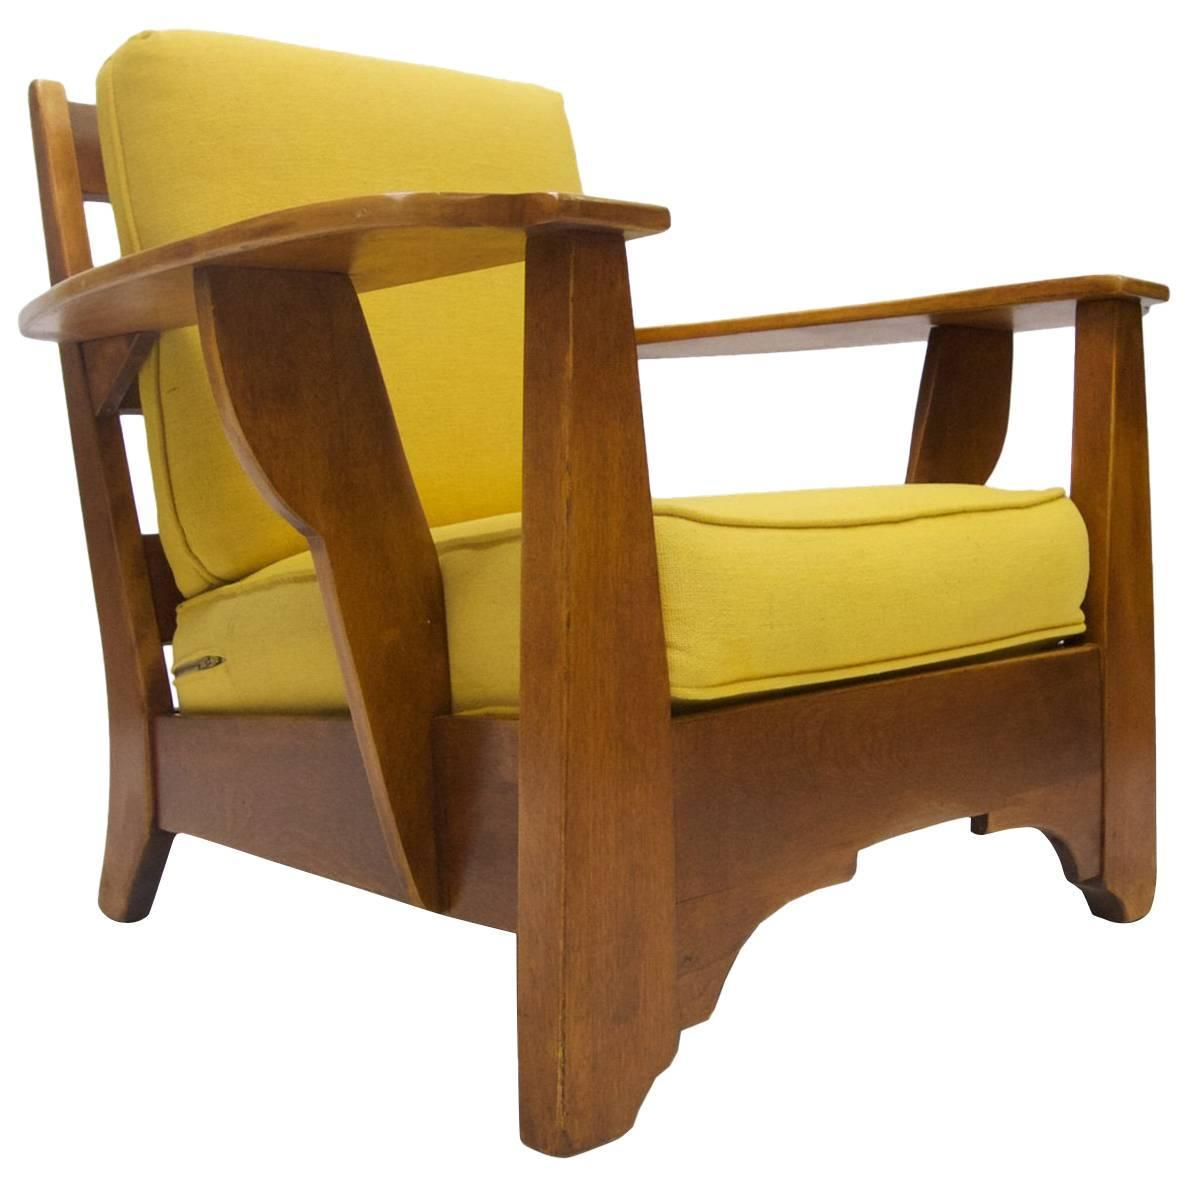 Nice Cushman Wide Paddle Arm Lounge Chair In Rock Maple By Herman De Vries For  Sale At 1stdibs